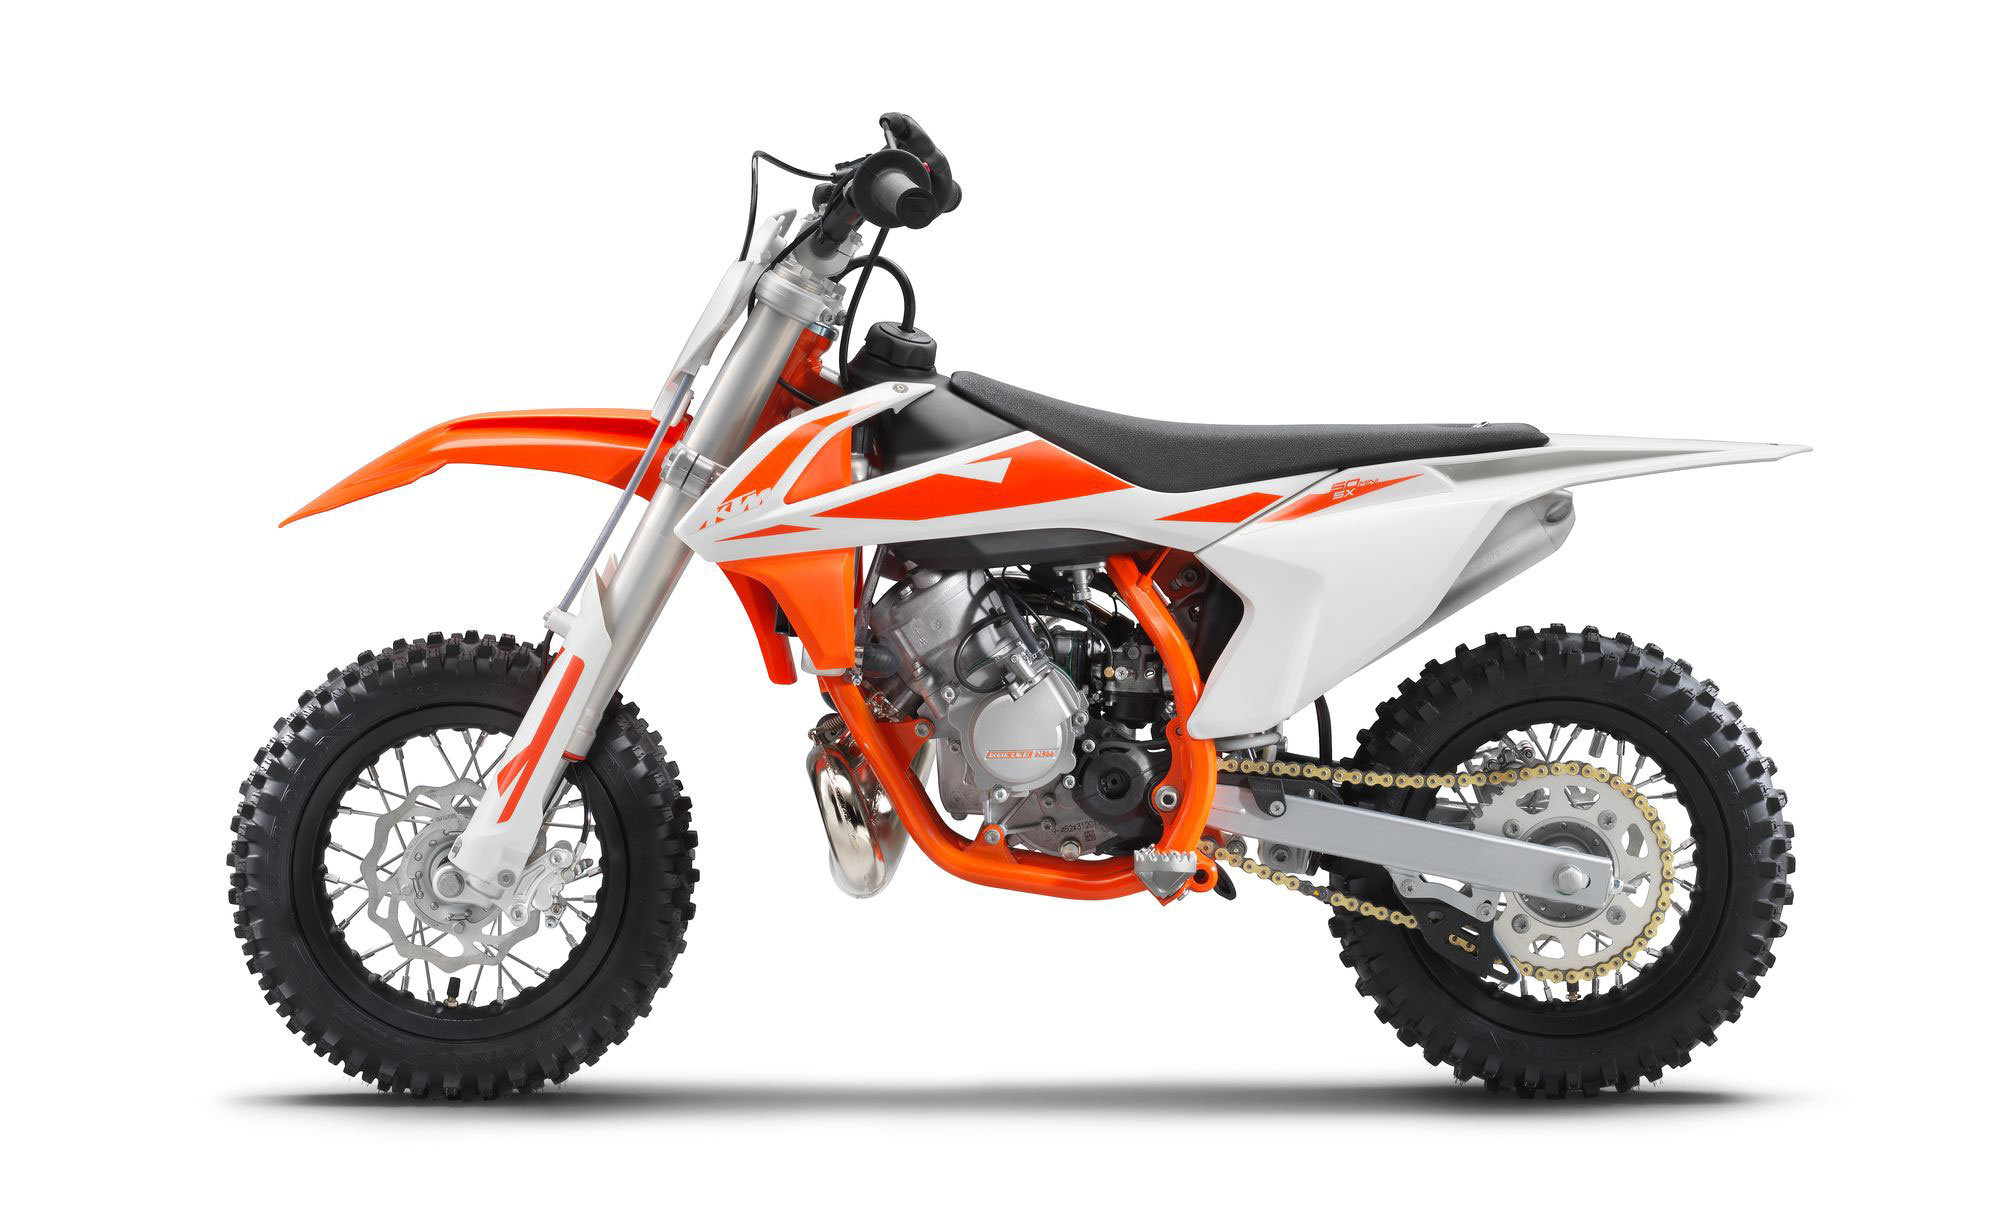 2019 KTM 50 SX Mini Guide • Total Motorcycle